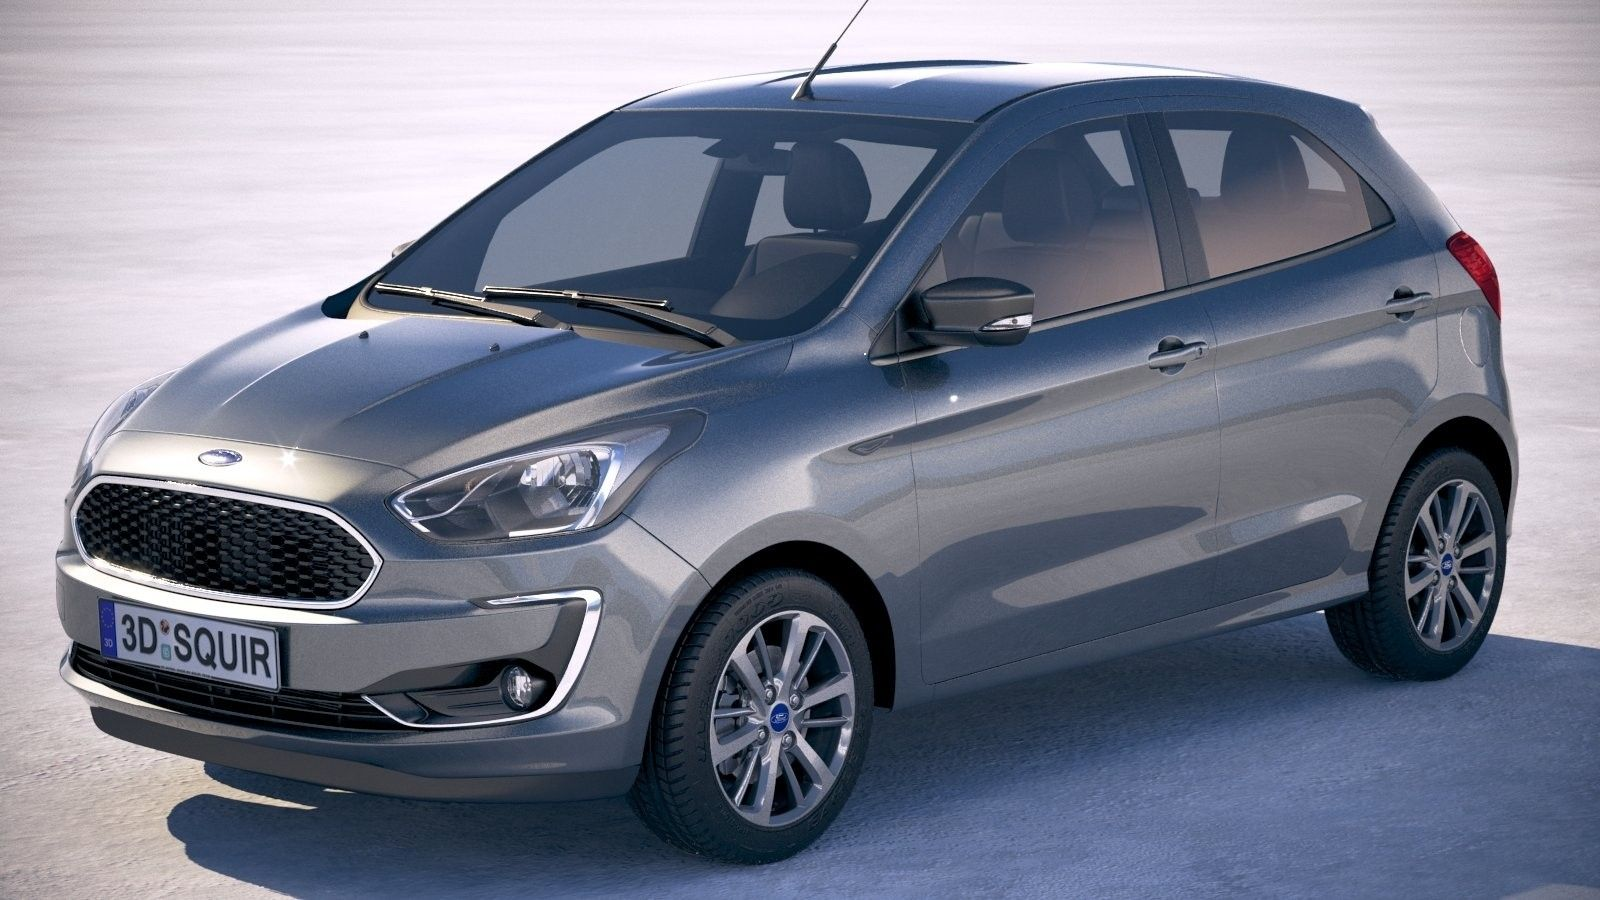 2019 Ford Ka Plus Review Styling Interior Engine Price Sale And Photos